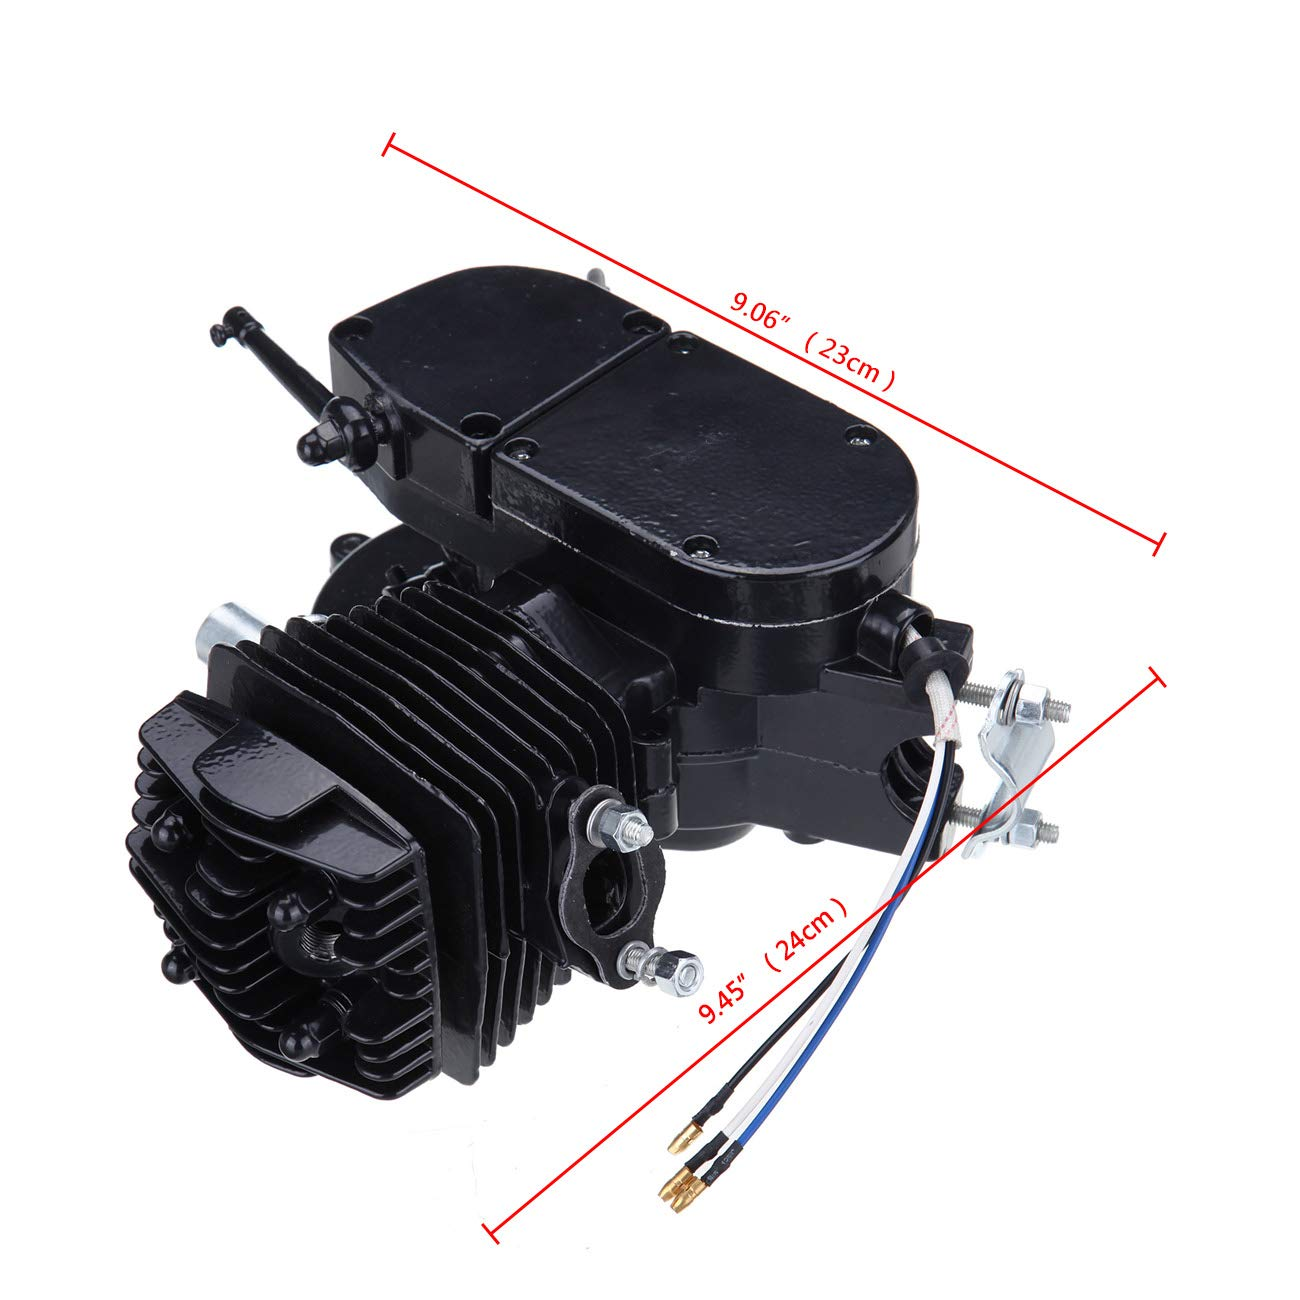 Sange 2 Stroke Pedal Cycle Petrol Gas Motor Conversion Kit Air Cooling Motorized Engine Kit for Motorized Bike (Negro, 50cc): Amazon.es: Coche y moto